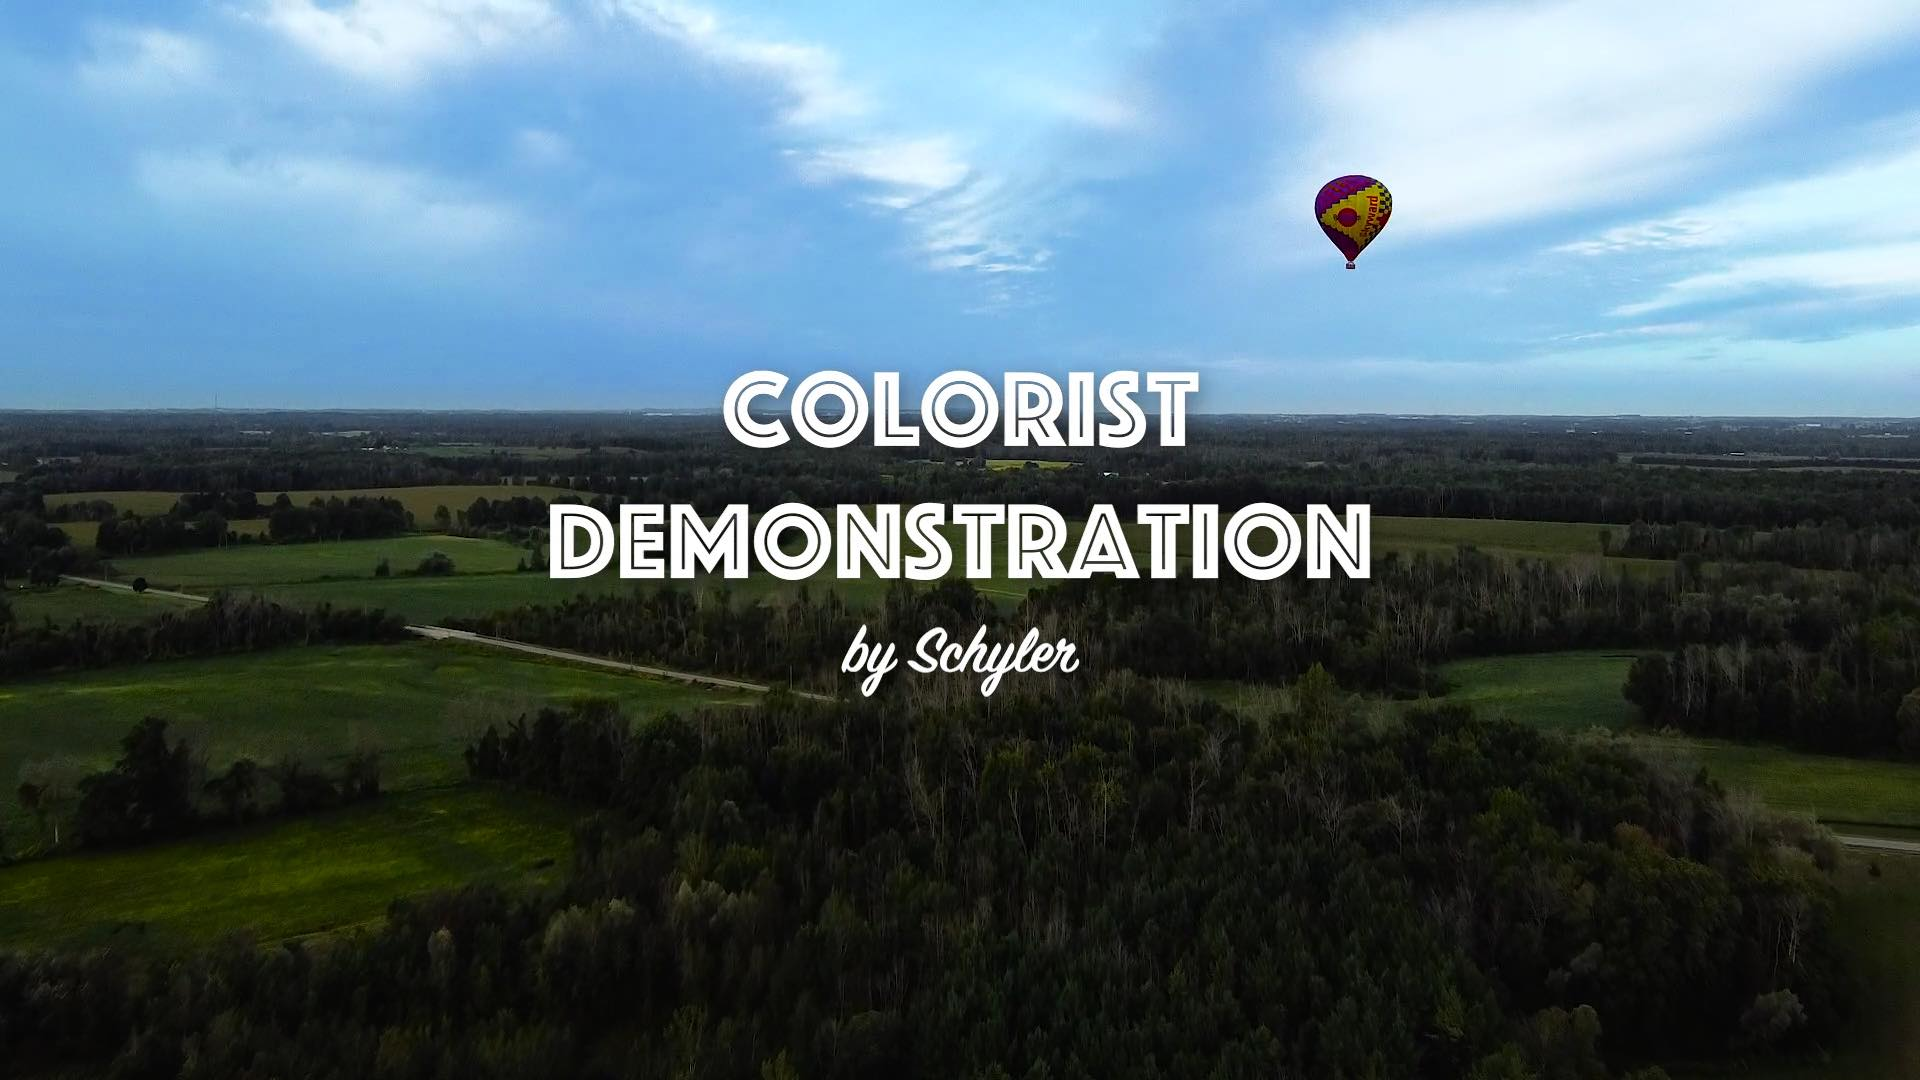 Still of the colorist demo video made by Schyler.